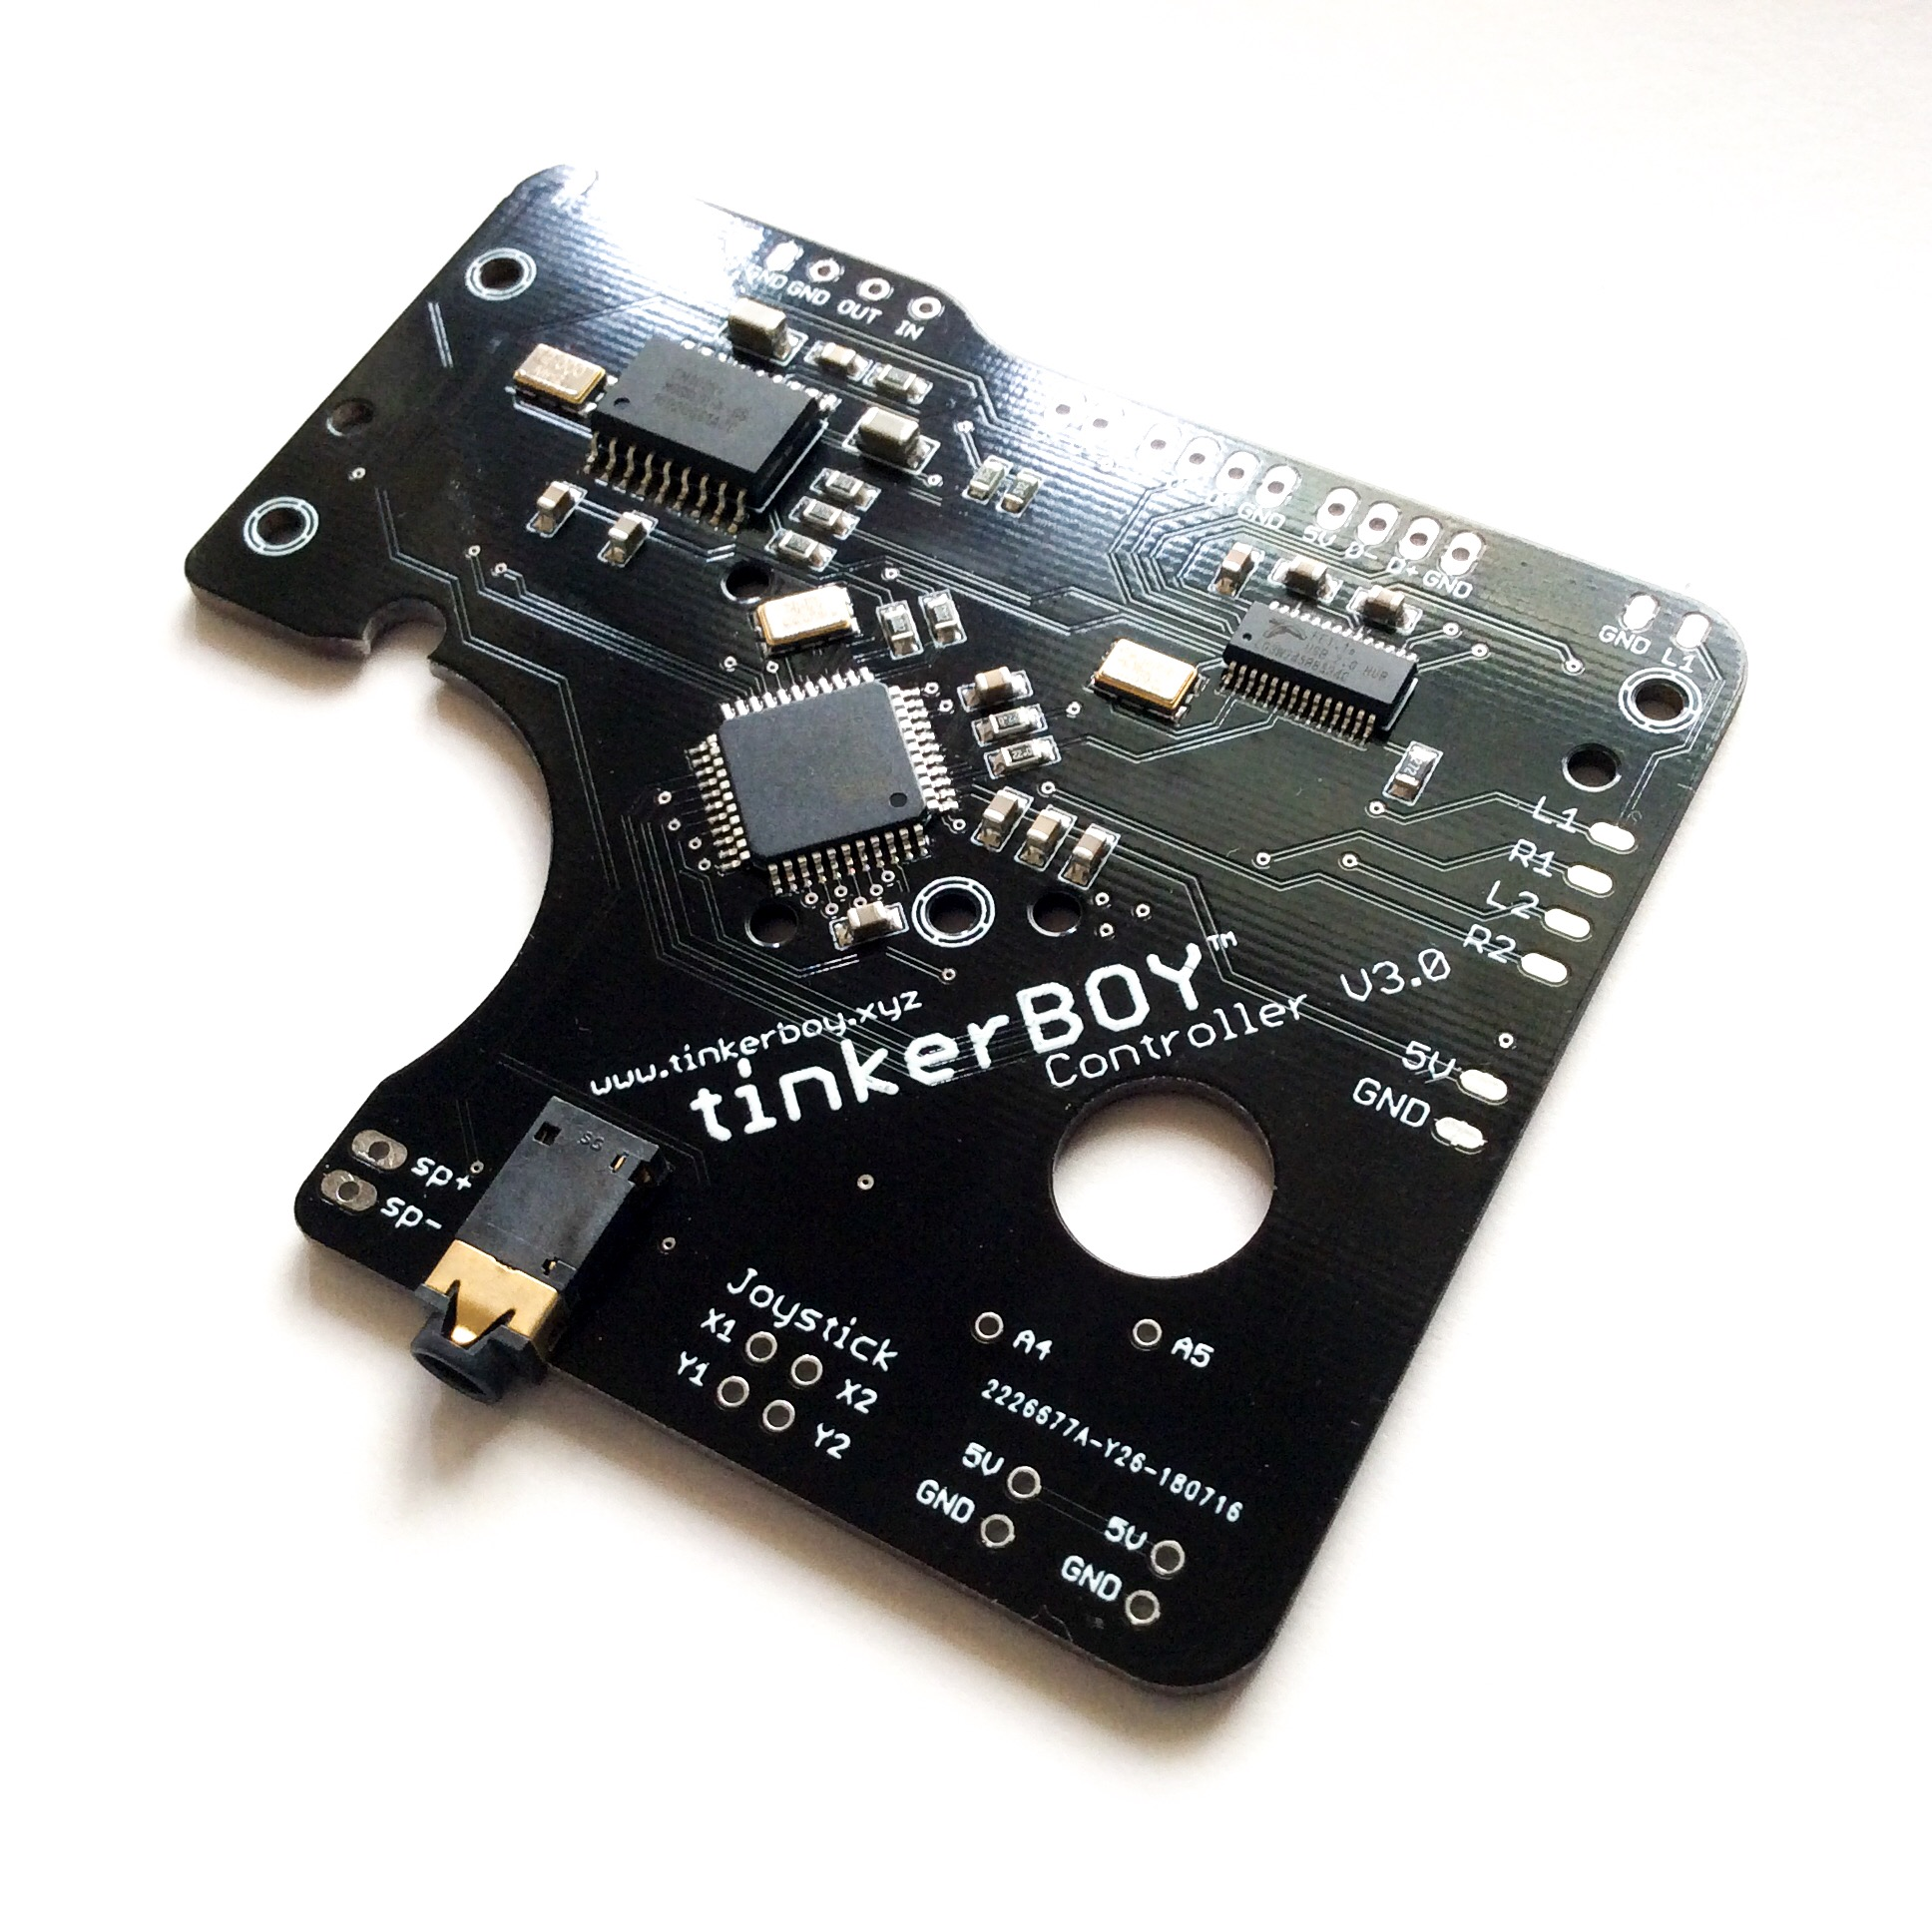 Getting Started Guide For Tinkerboy Controller V30 Build Your Own Pc Wiring I Designed The From Scratch So You Can Easily Game Boy Zero Or 3 Its A Big Upgrade My Other